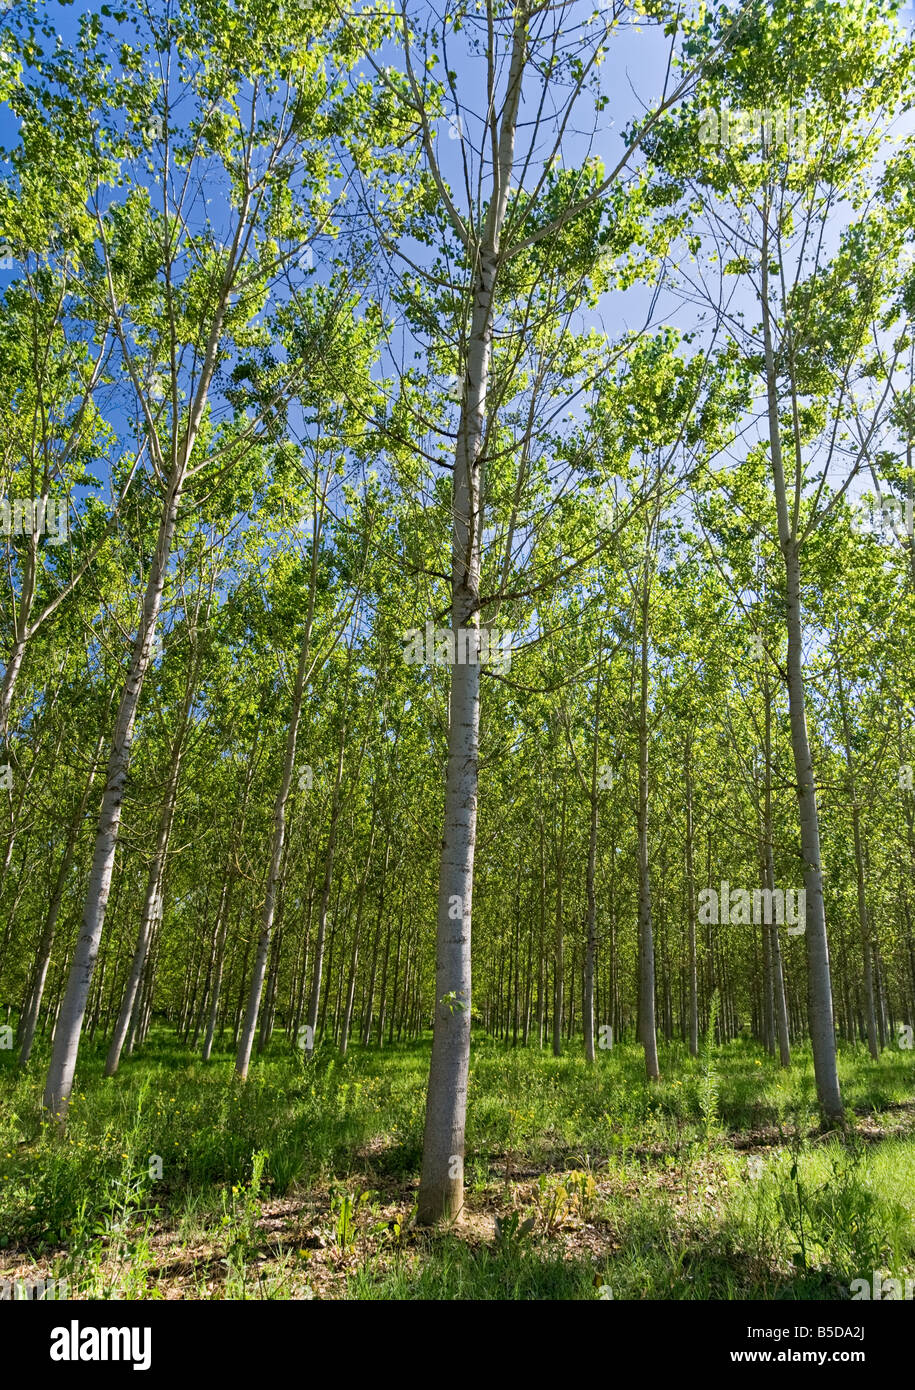 Managed forest of Silver Birch trees Tarn et Garonne Southwest France Europe - Stock Image